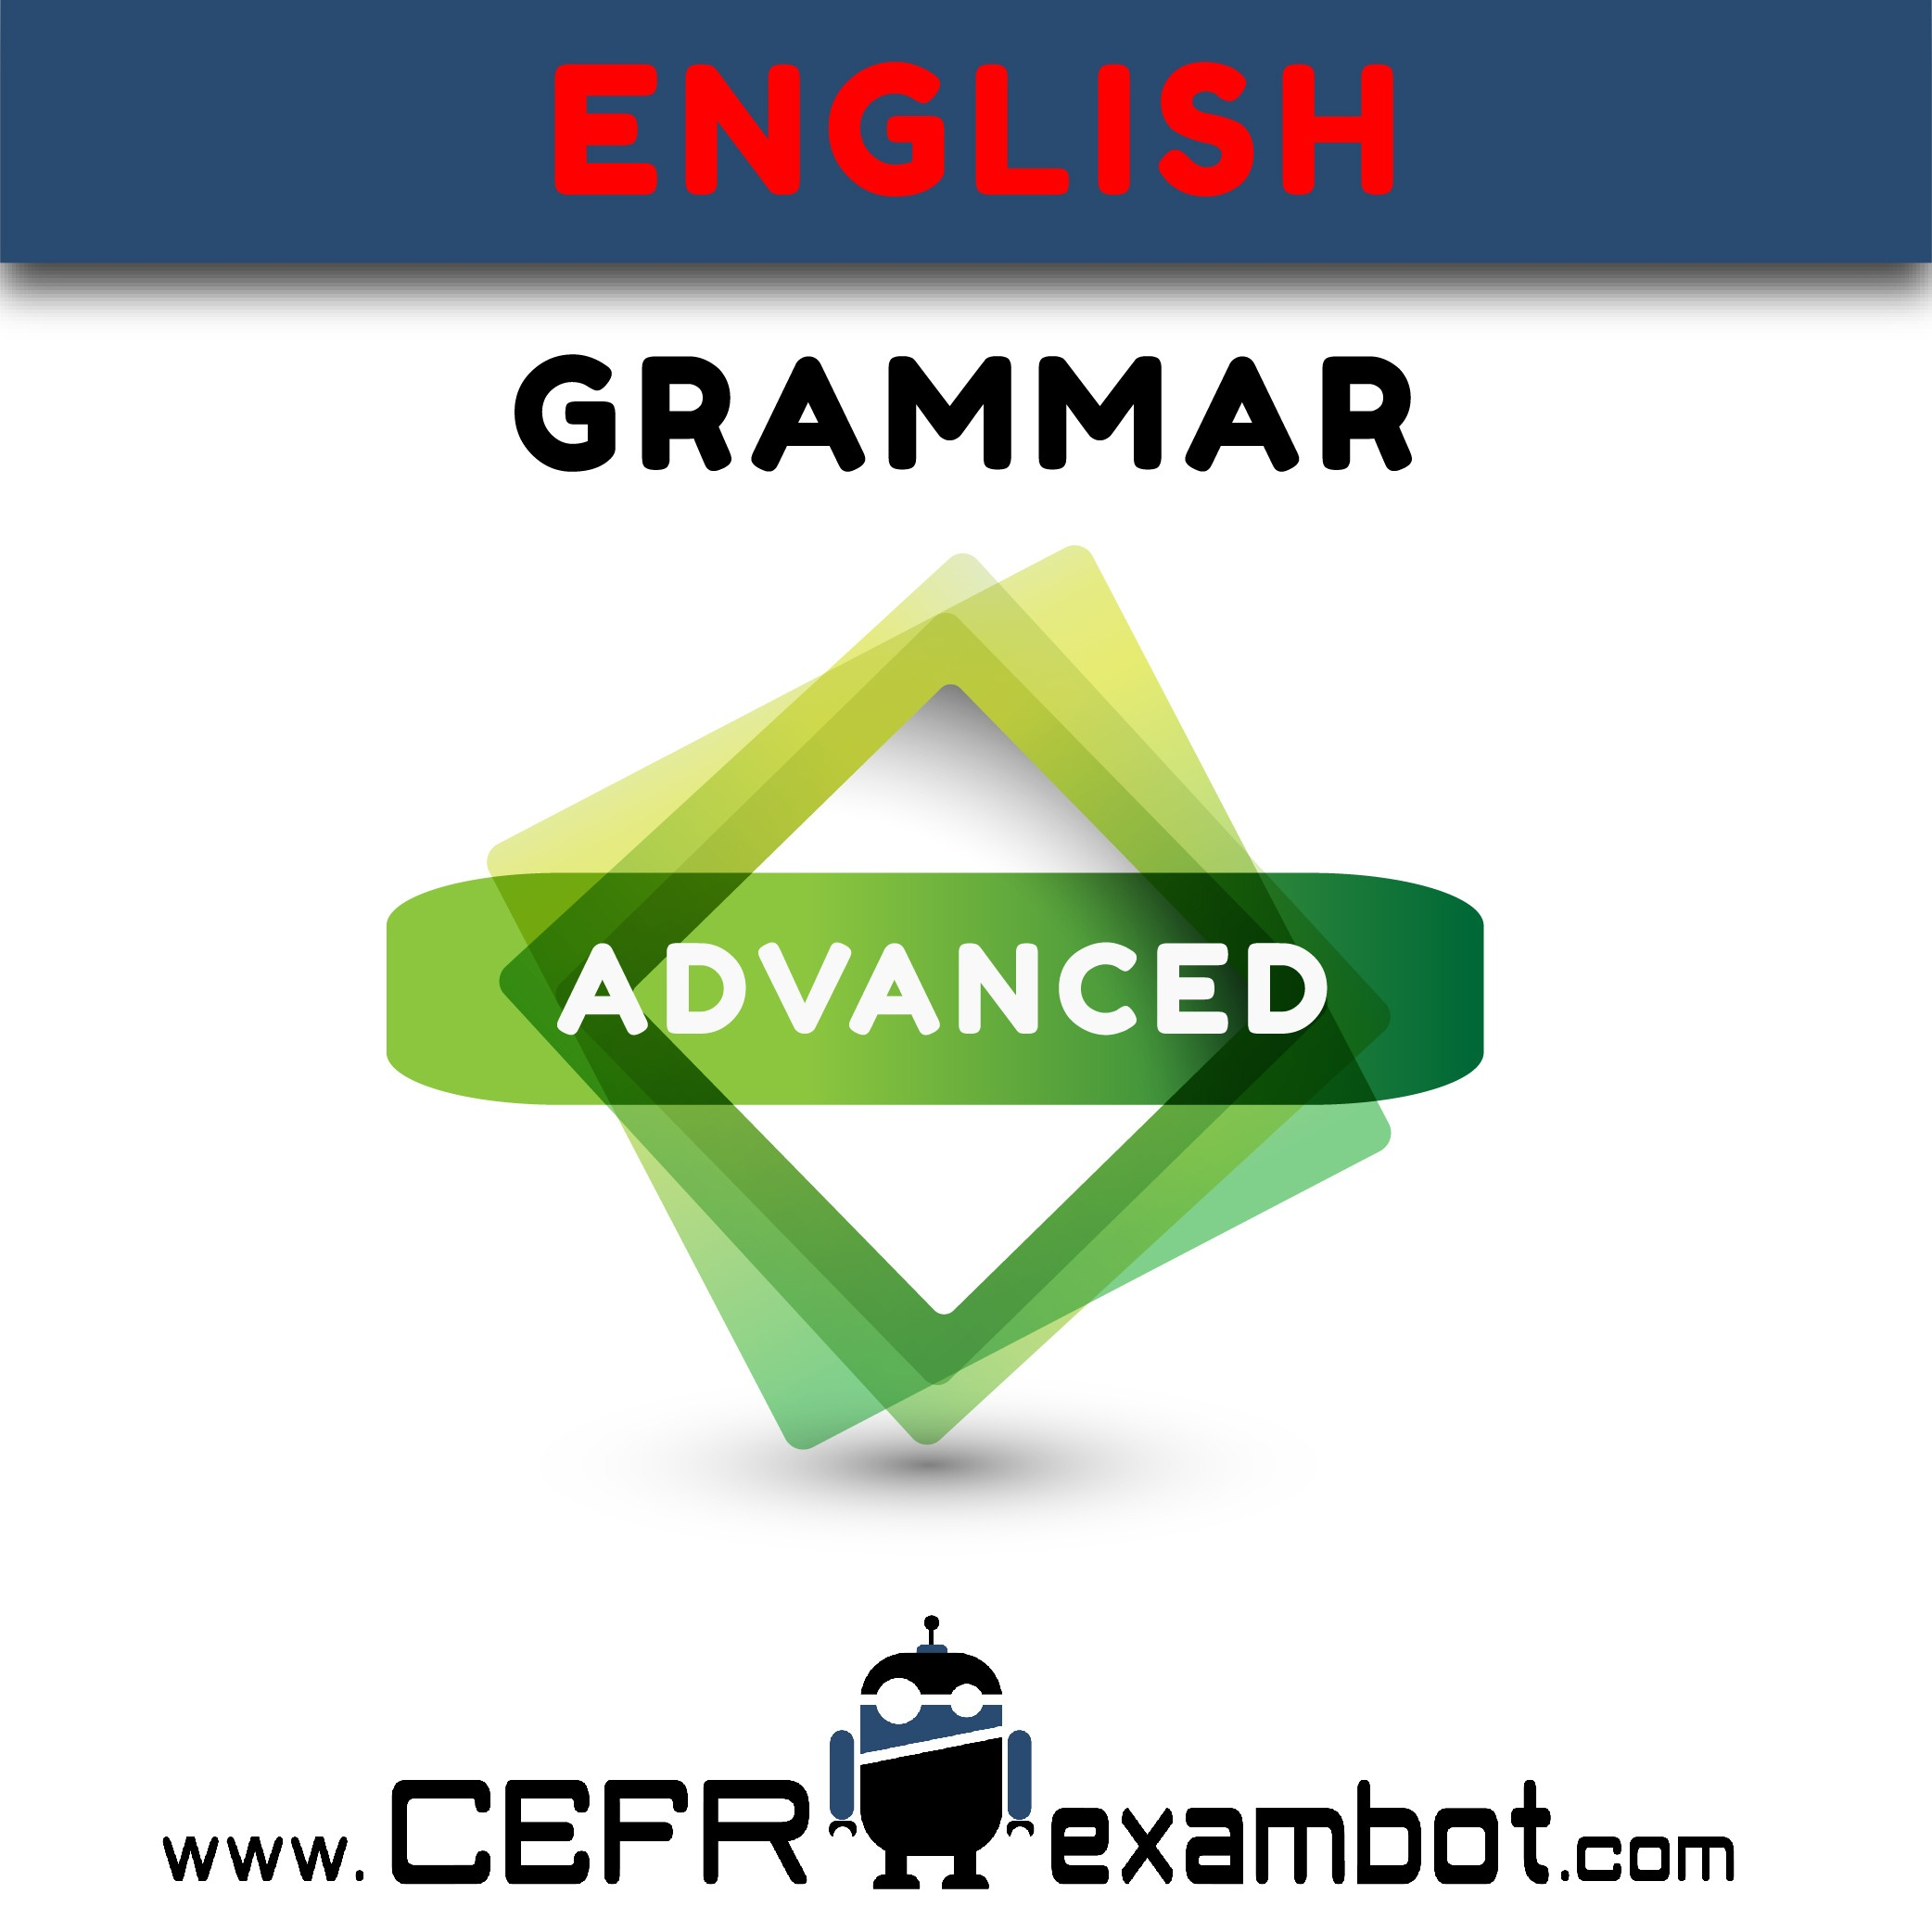 Advanced English Grammar www.CEFRexambot.com2 (2)